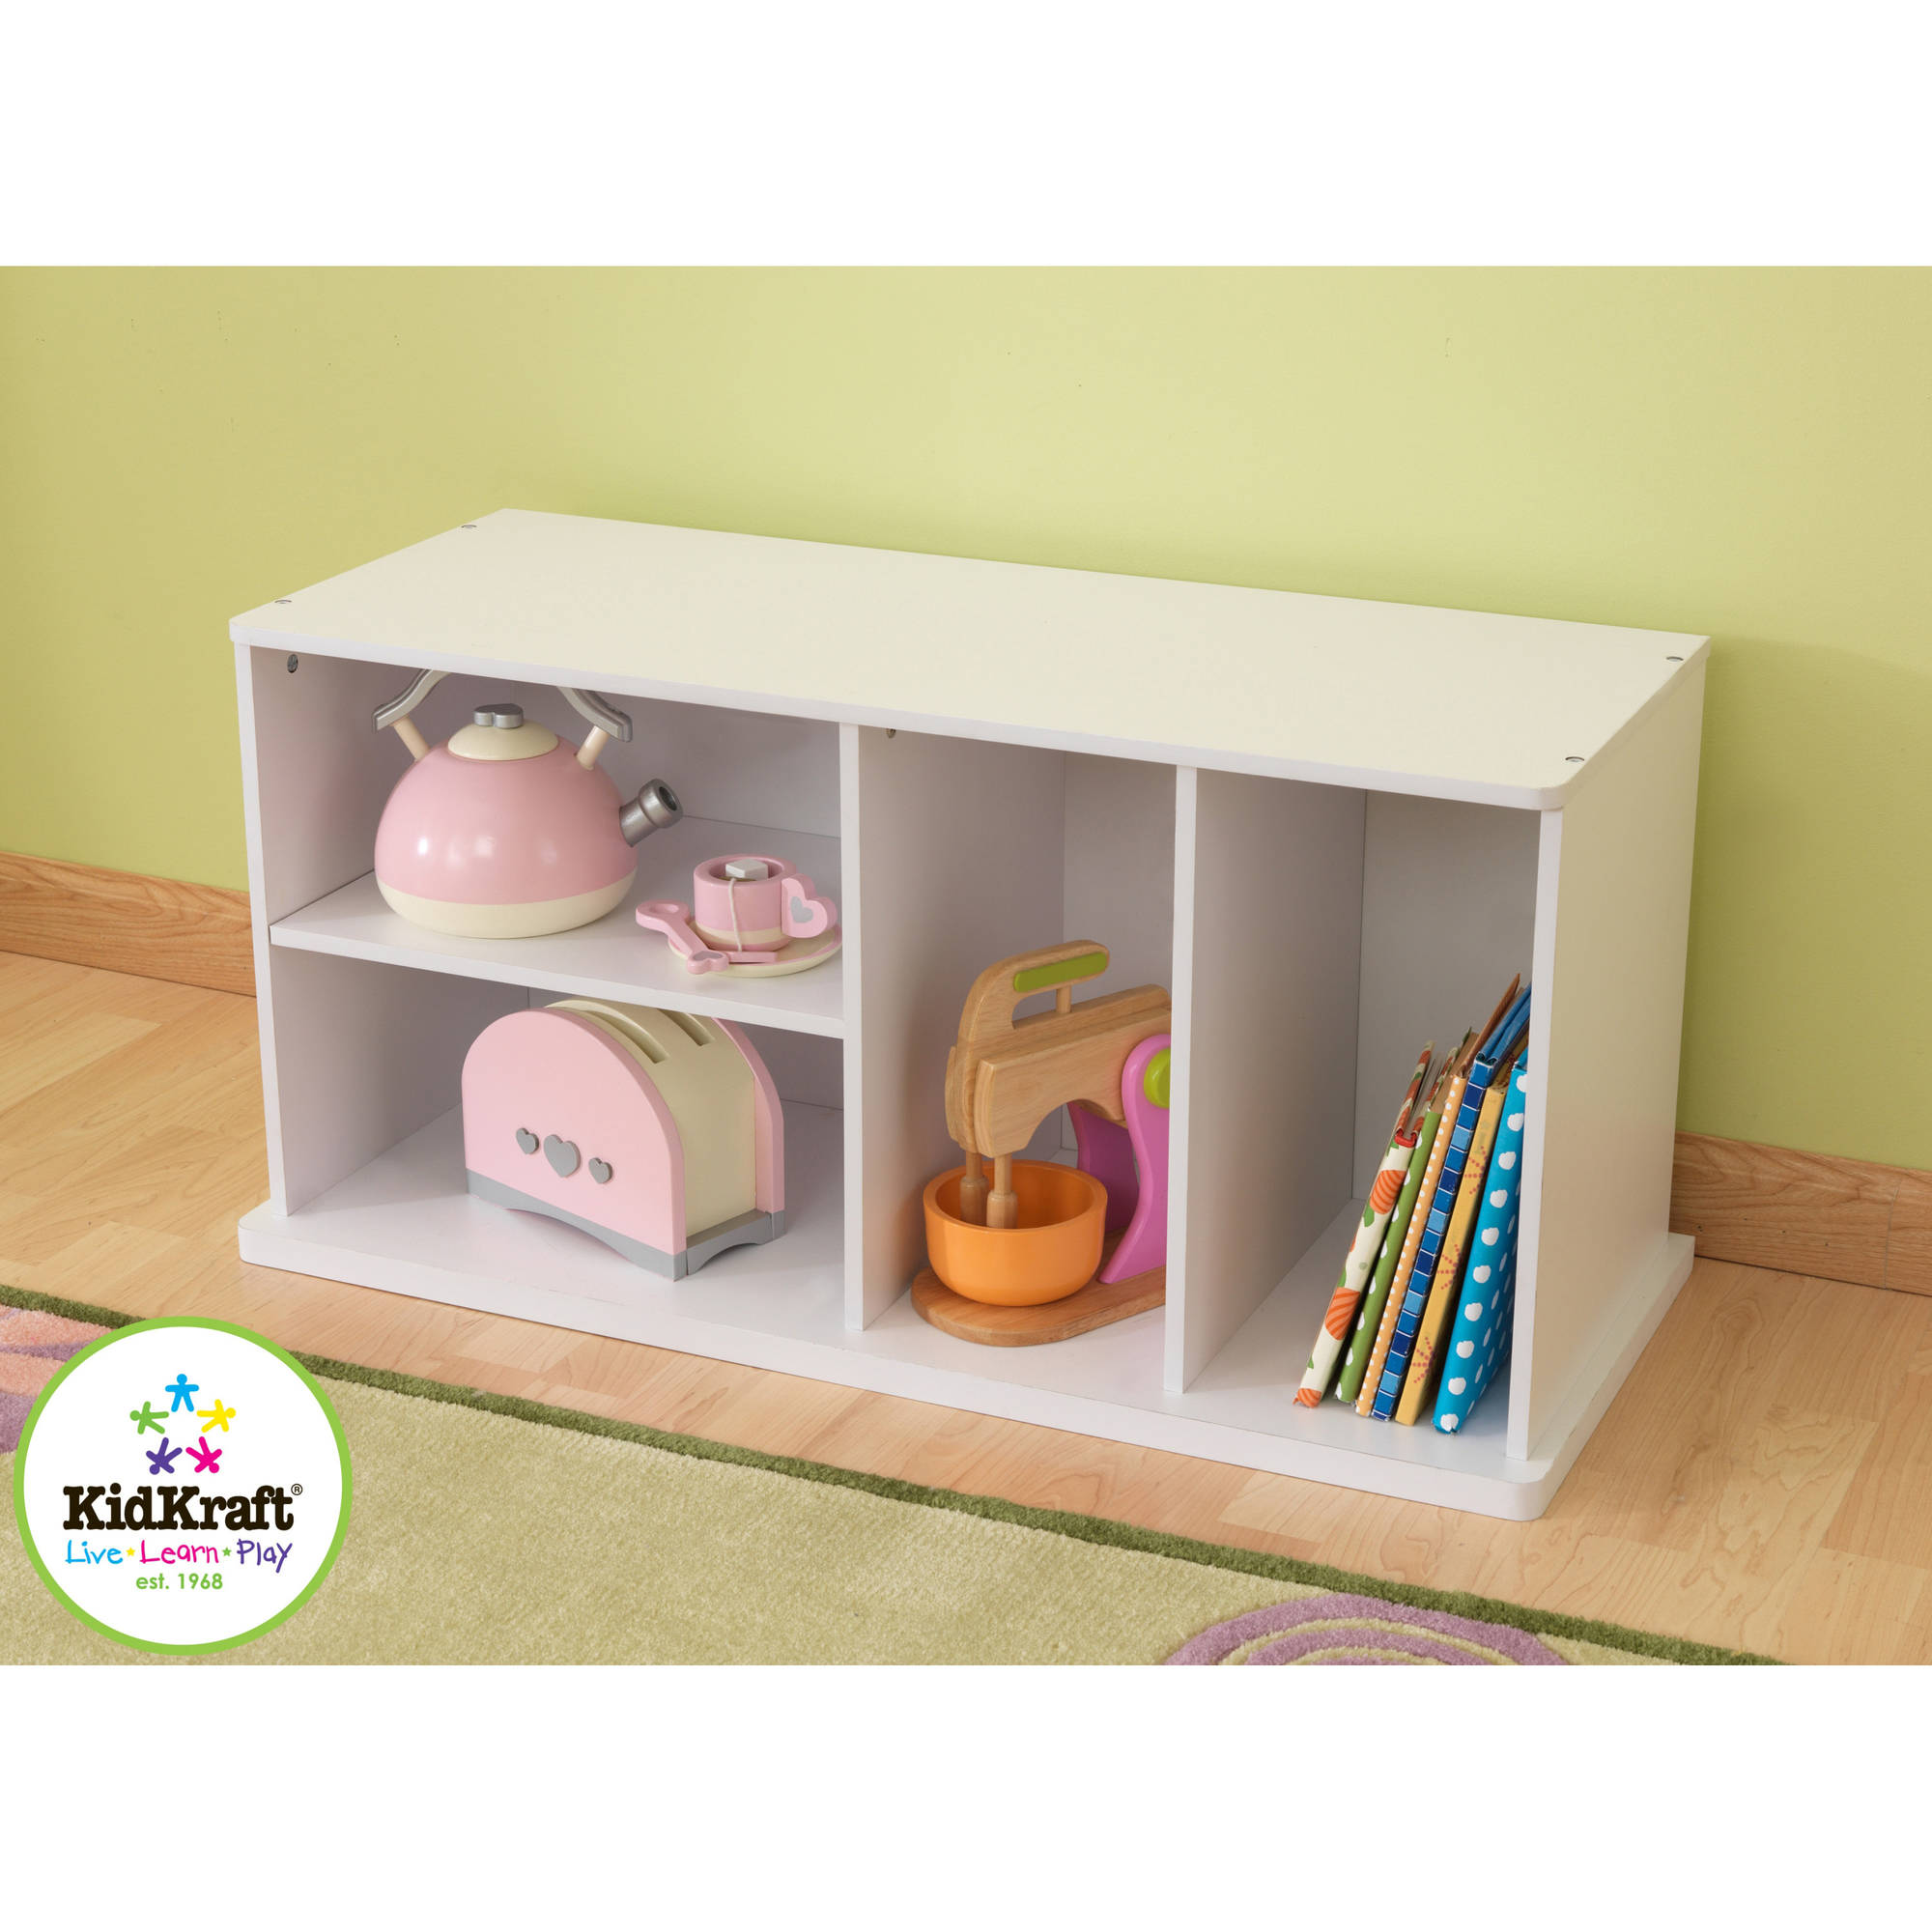 KidKraft Stackable Storage Unit with Shelves, Multiple Colors